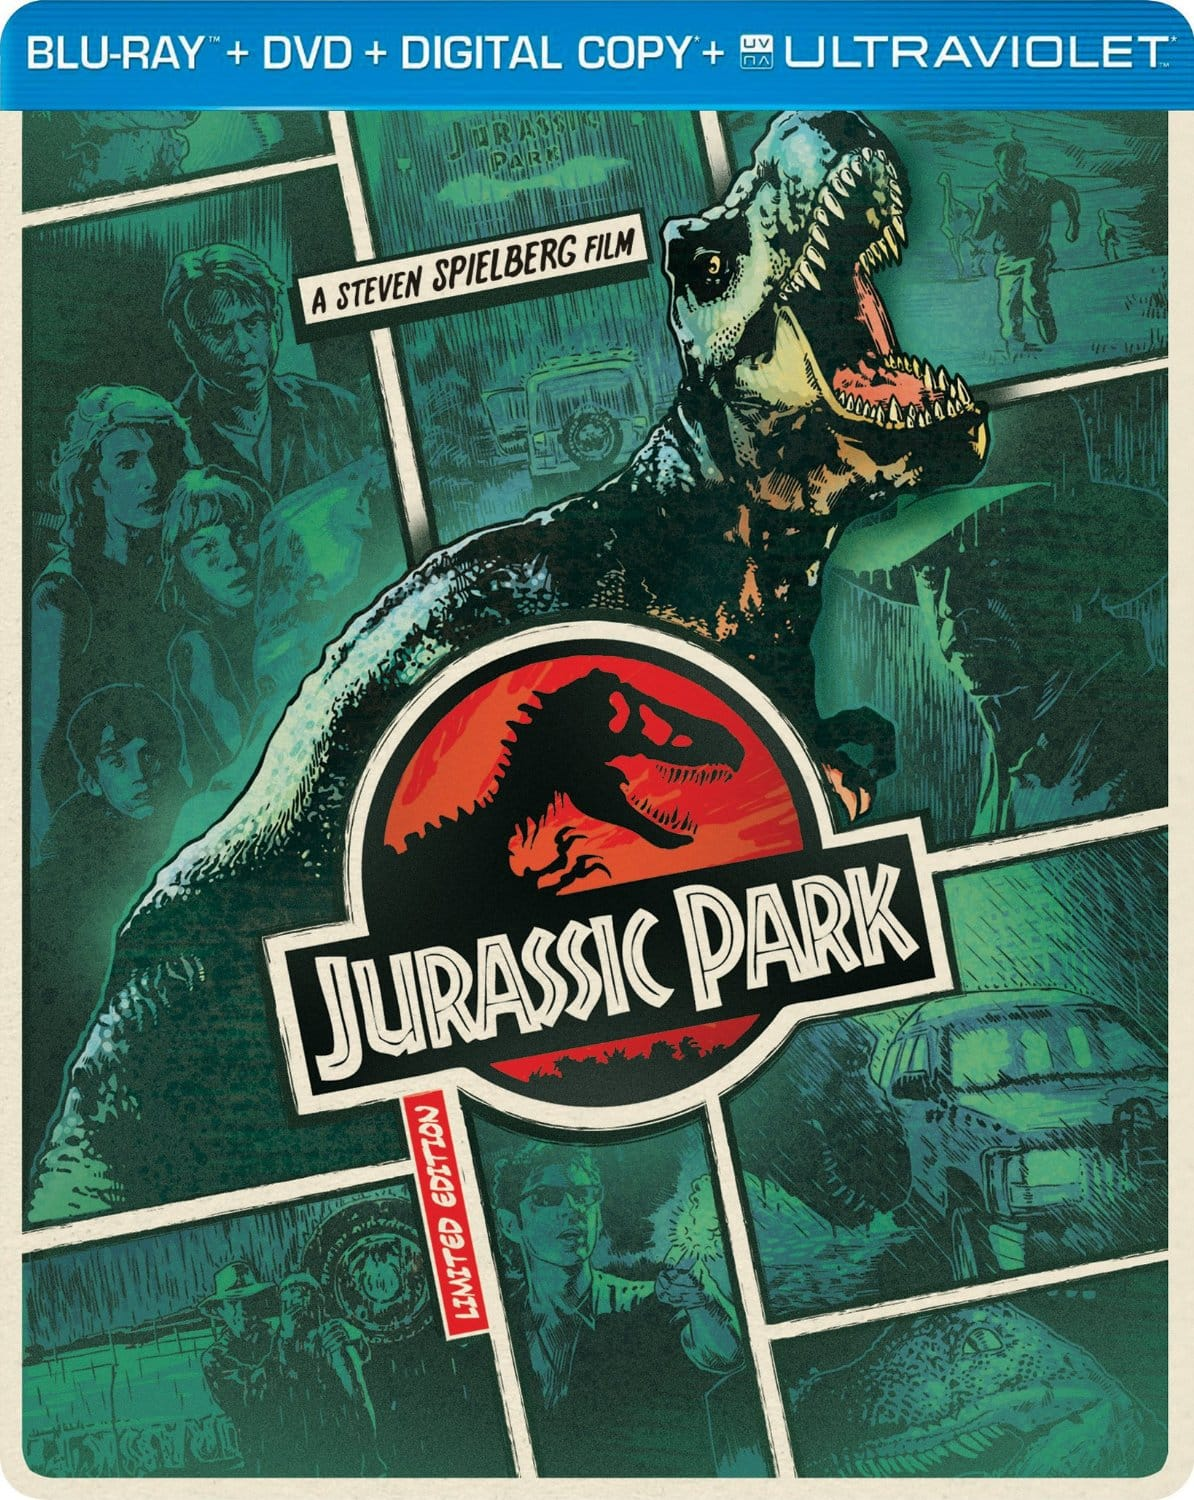 Jurassic Park Steelbook (Blu-ray/DVD/Digital Copy) $7.99 + Free Store Pickup @ Best Buy